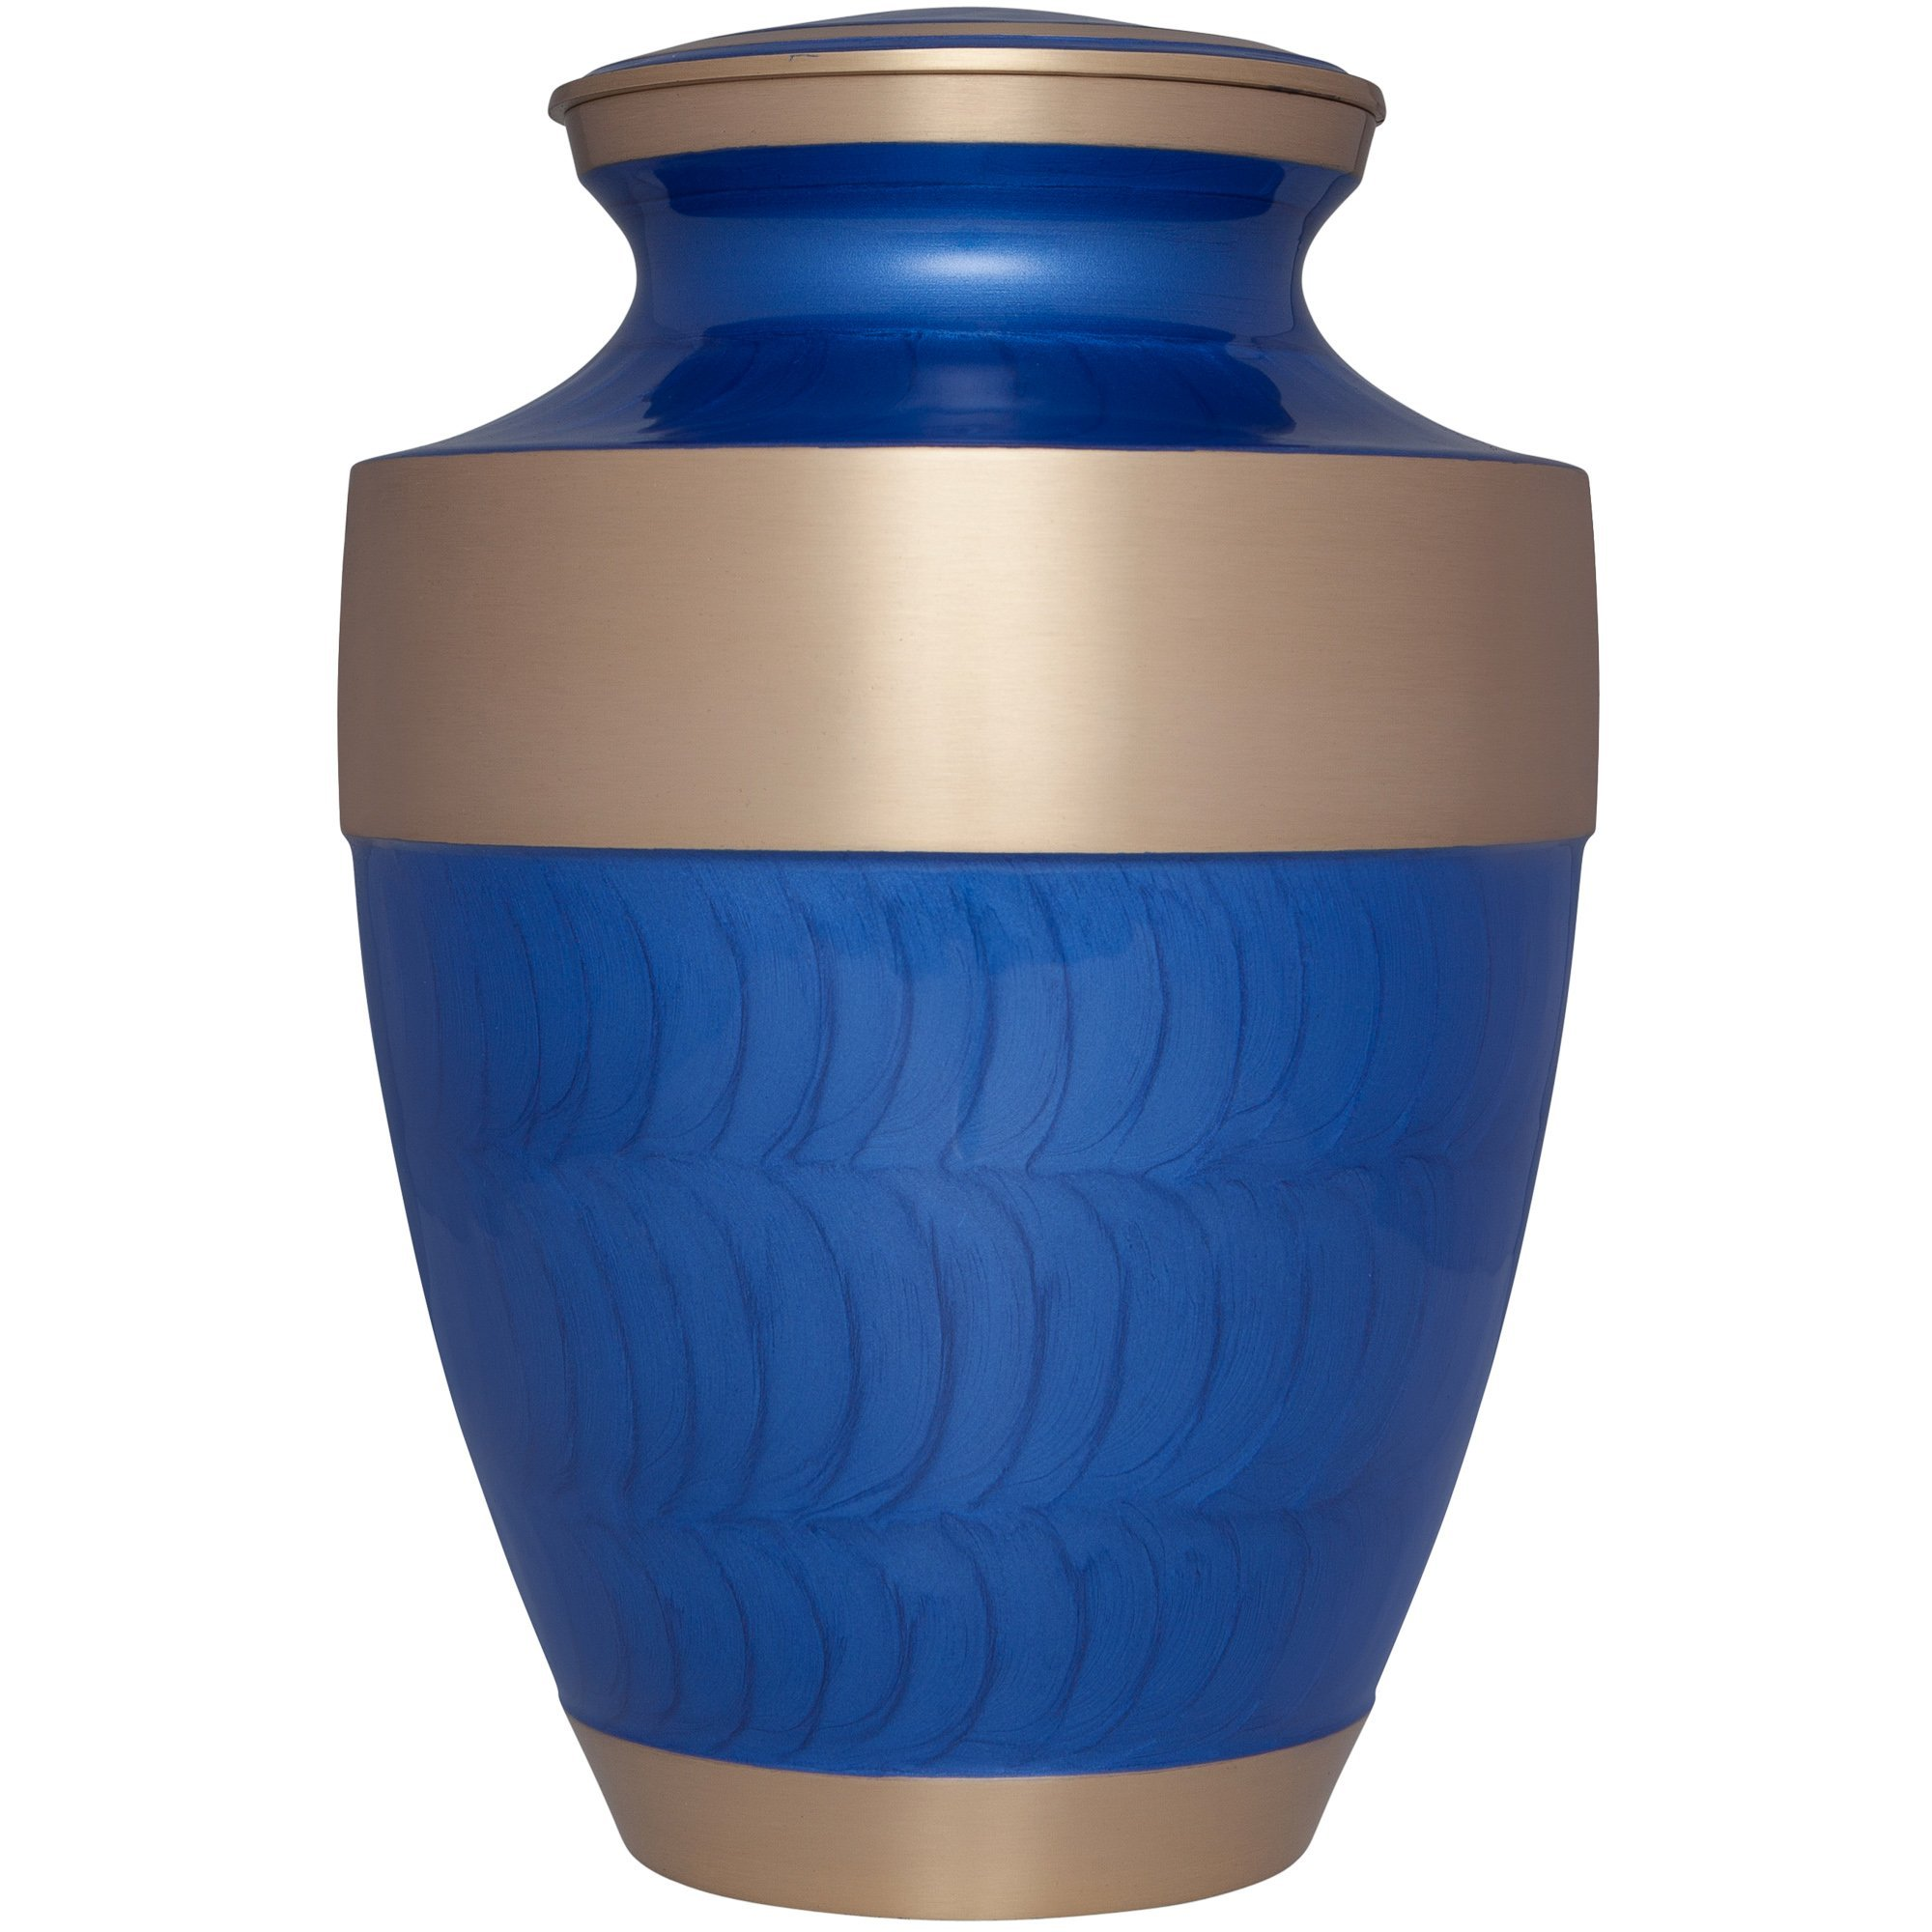 Funeral Urn by Liliane Memorials - Cremation Urn for Human Ashes - Hand Made in Brass - Suitable for Cemetery Burial or Niche - Large - Fits remains of Adults up to 200 lbs - Banda Model (Blue)